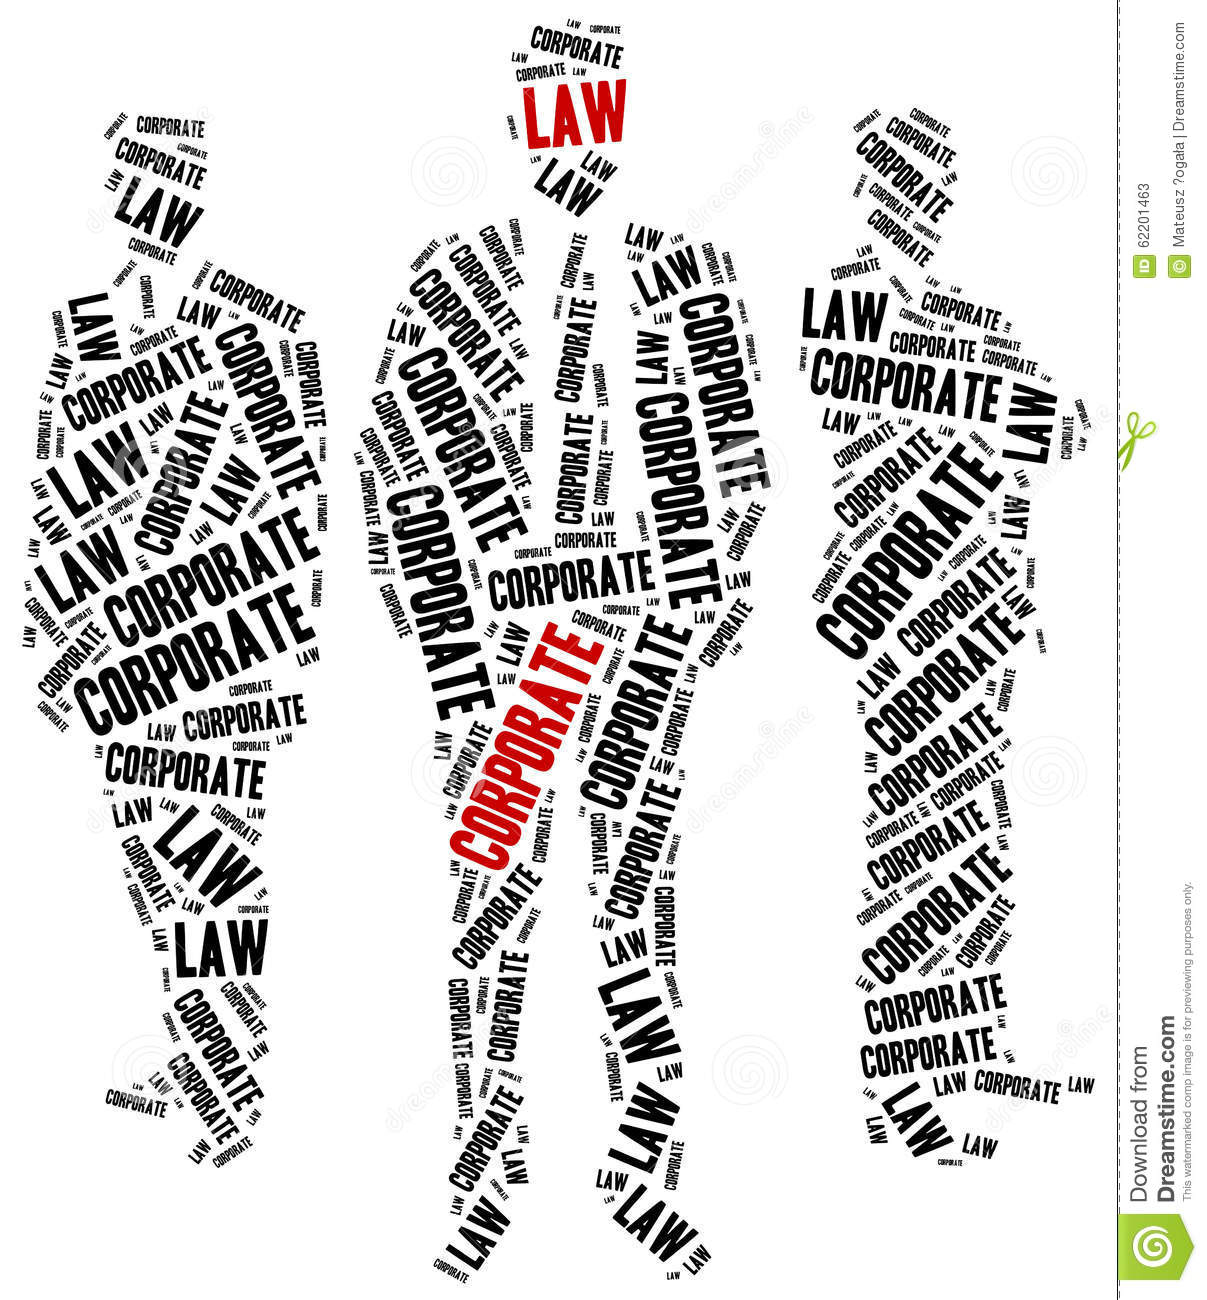 Corporate Law. Concept Related To Different Areas Of Law